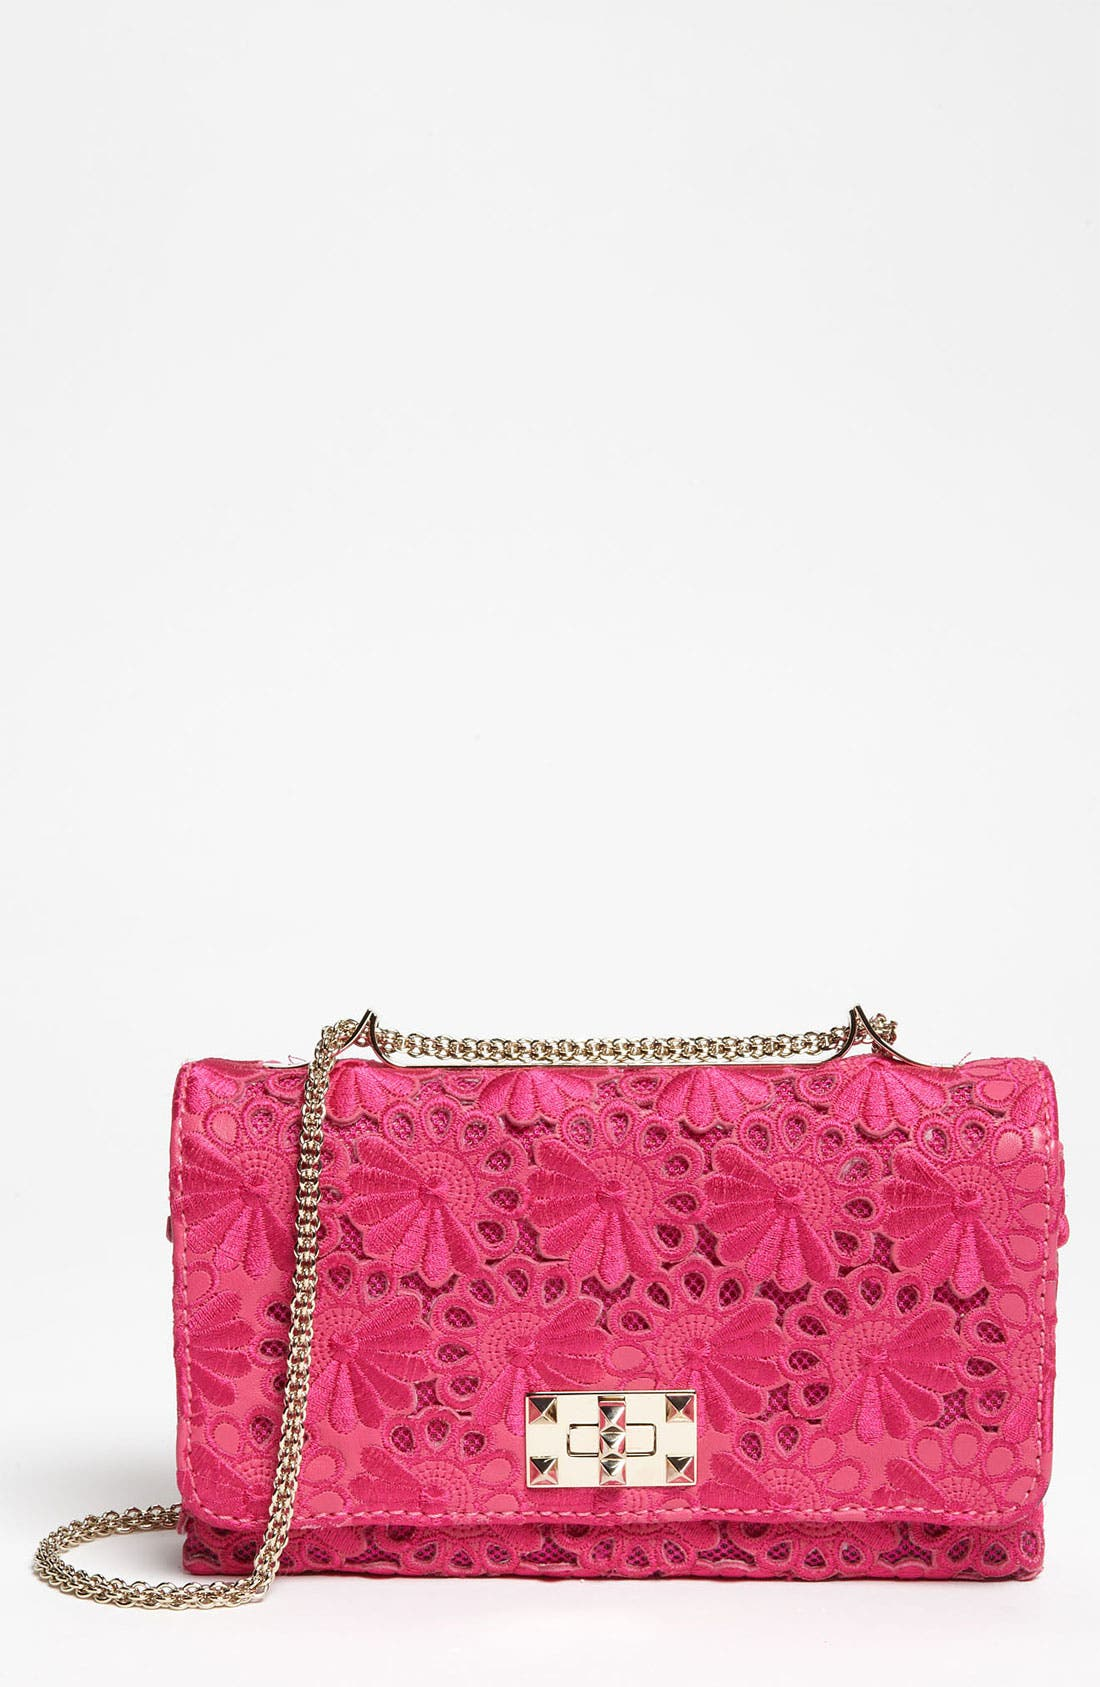 Alternate Image 1 Selected - Valentino 'Girello Flap' Lace Bag